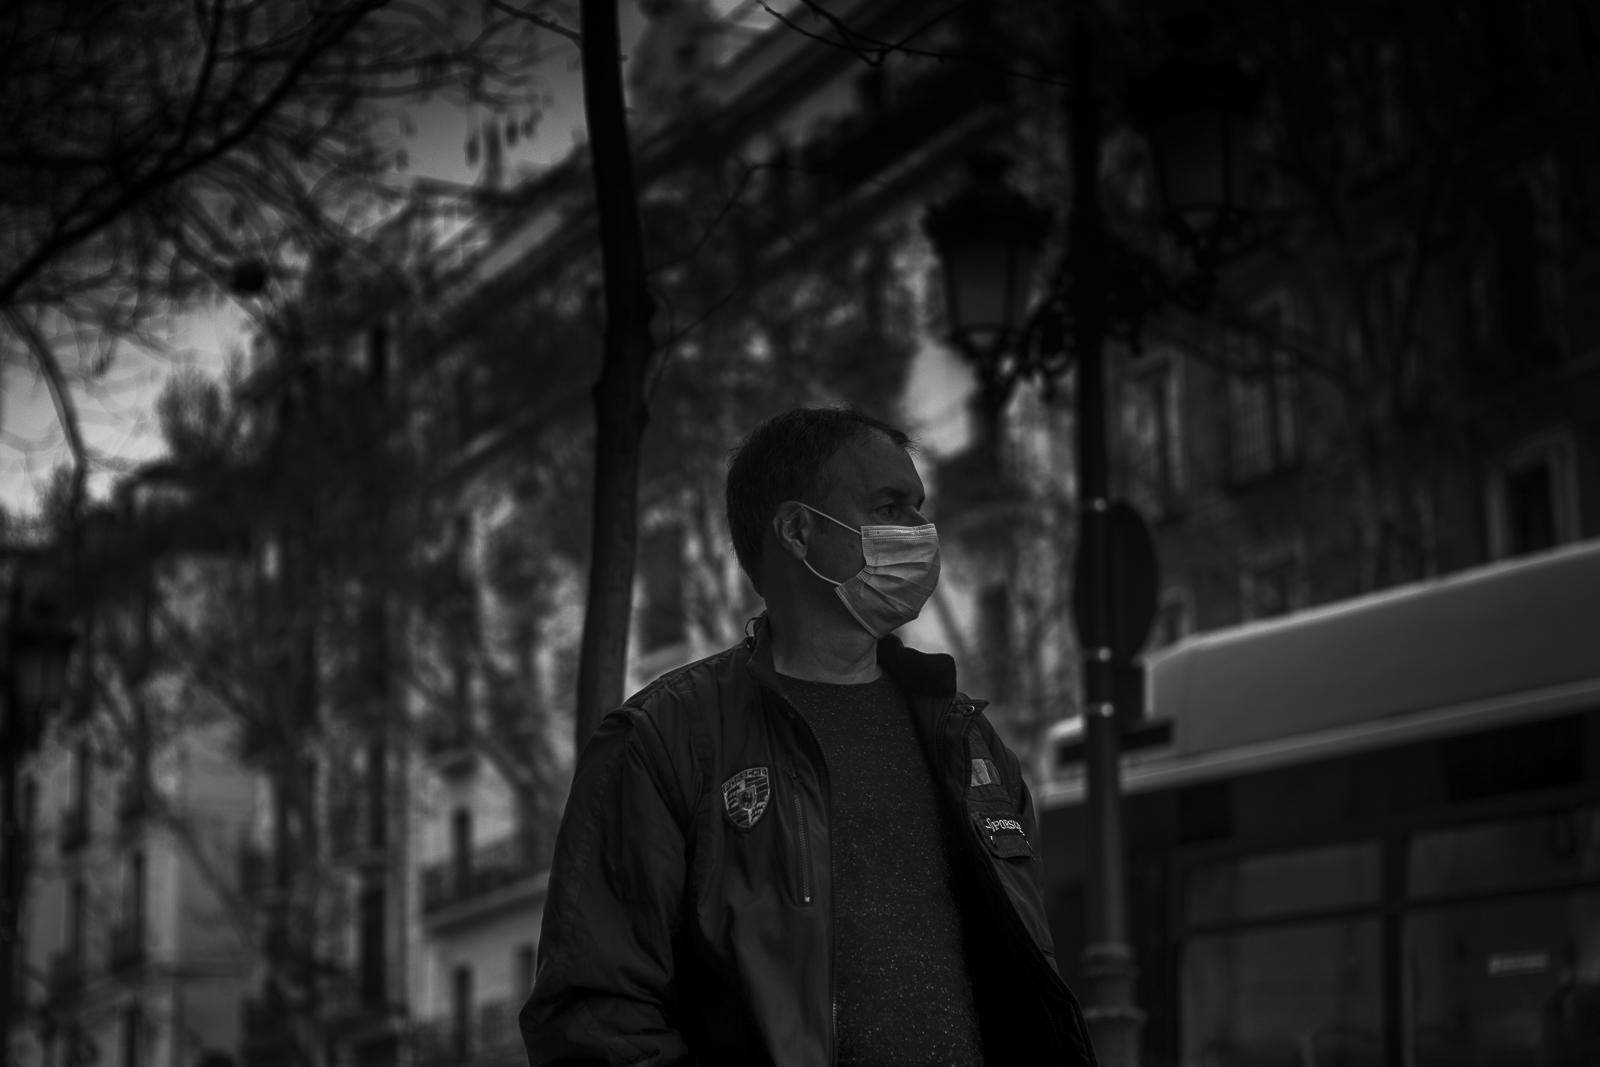 A man wearing a protective mask is seen in Madrid empty streets during the coronavirus lockdown.